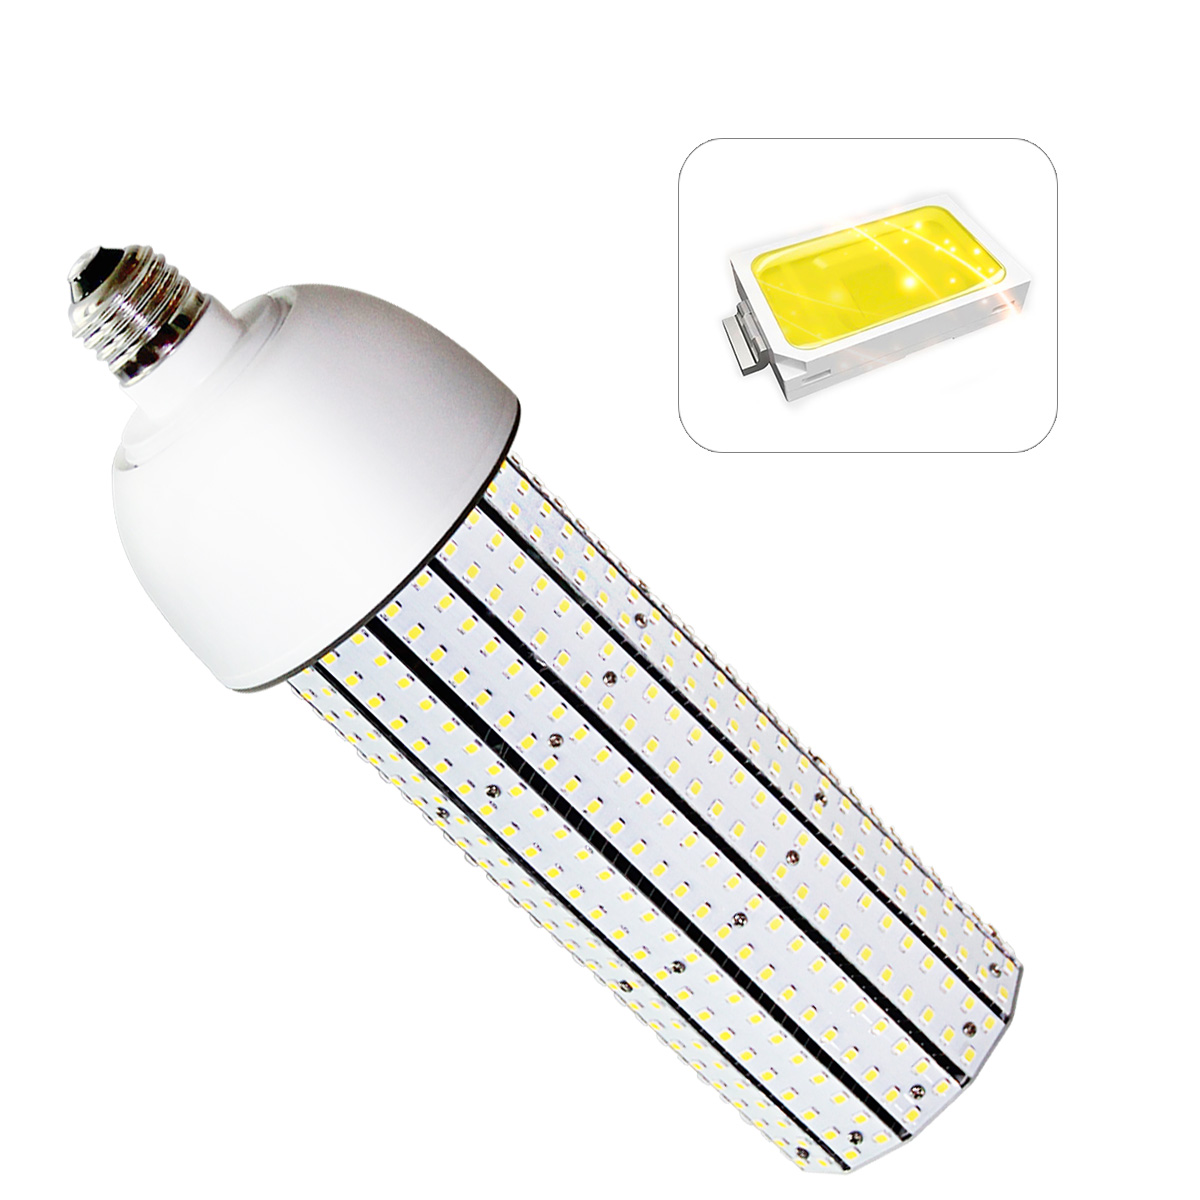 KAWELL 60W LED Corn Light Bulb E39 Large Mogul Base Commercial Retrofit Light Replacement for Fixtures HID/HPS/Metal Halide or CFL, 7200 lumen 3200K (Warm White) UL Listed TUV-Qualified DLC Certified